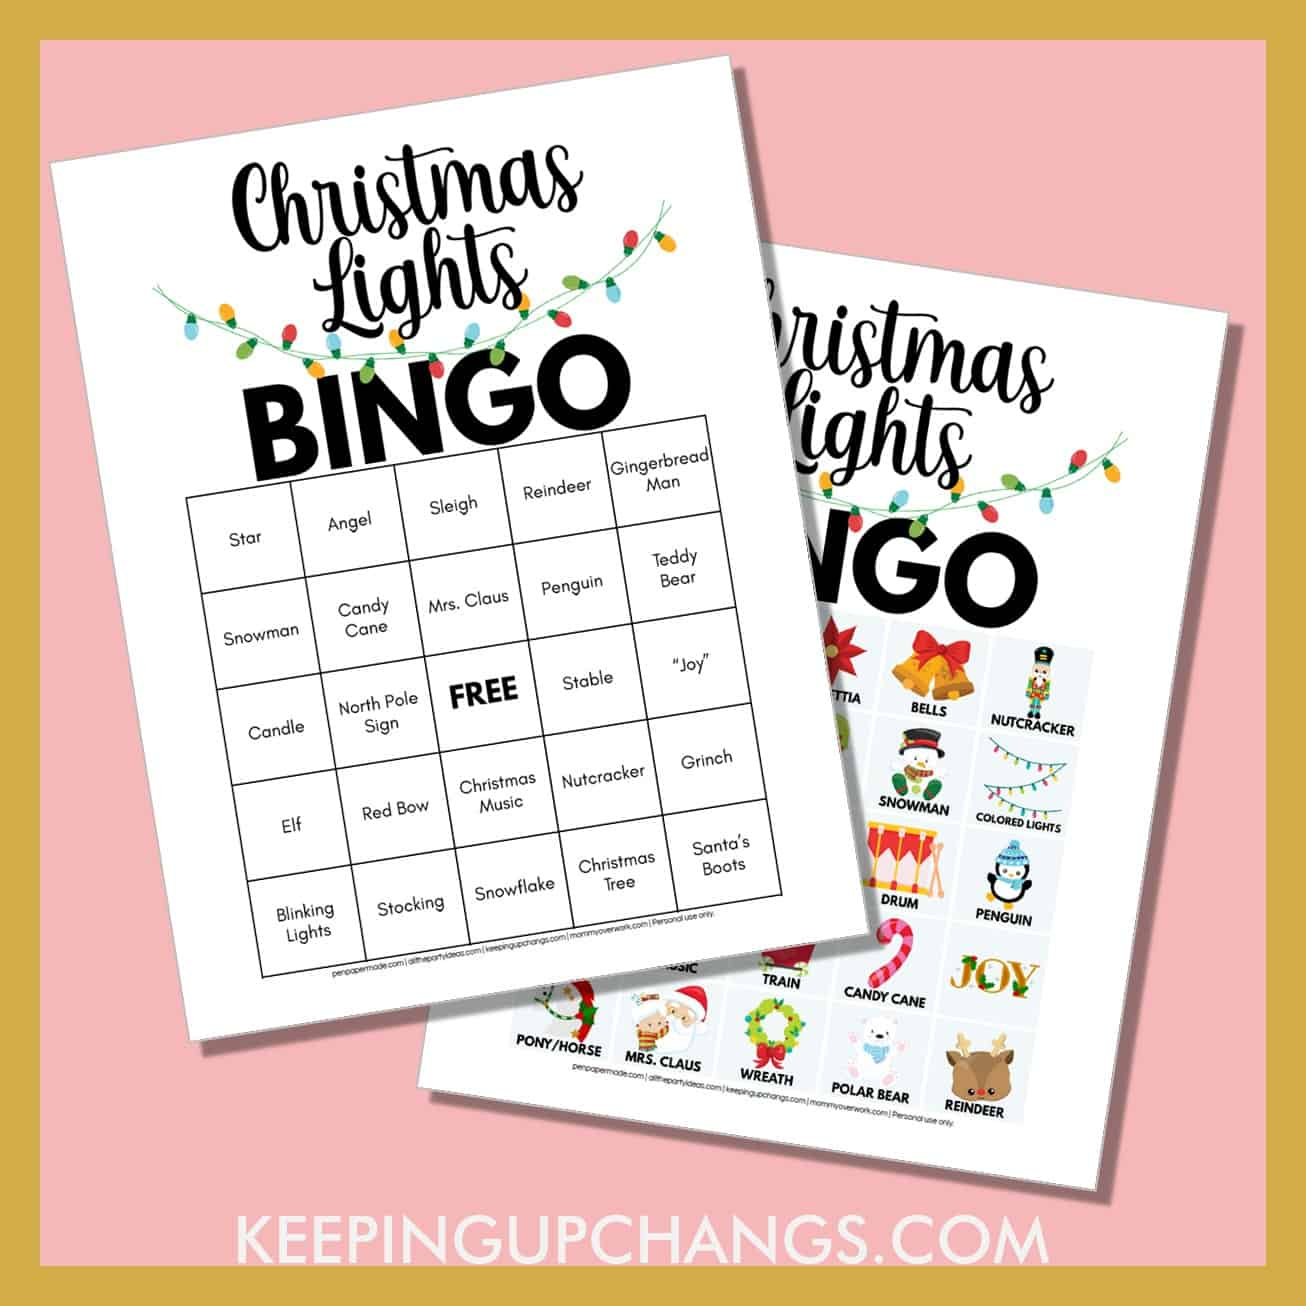 simple easy christmas lights bingo with free printable in 4 versions.